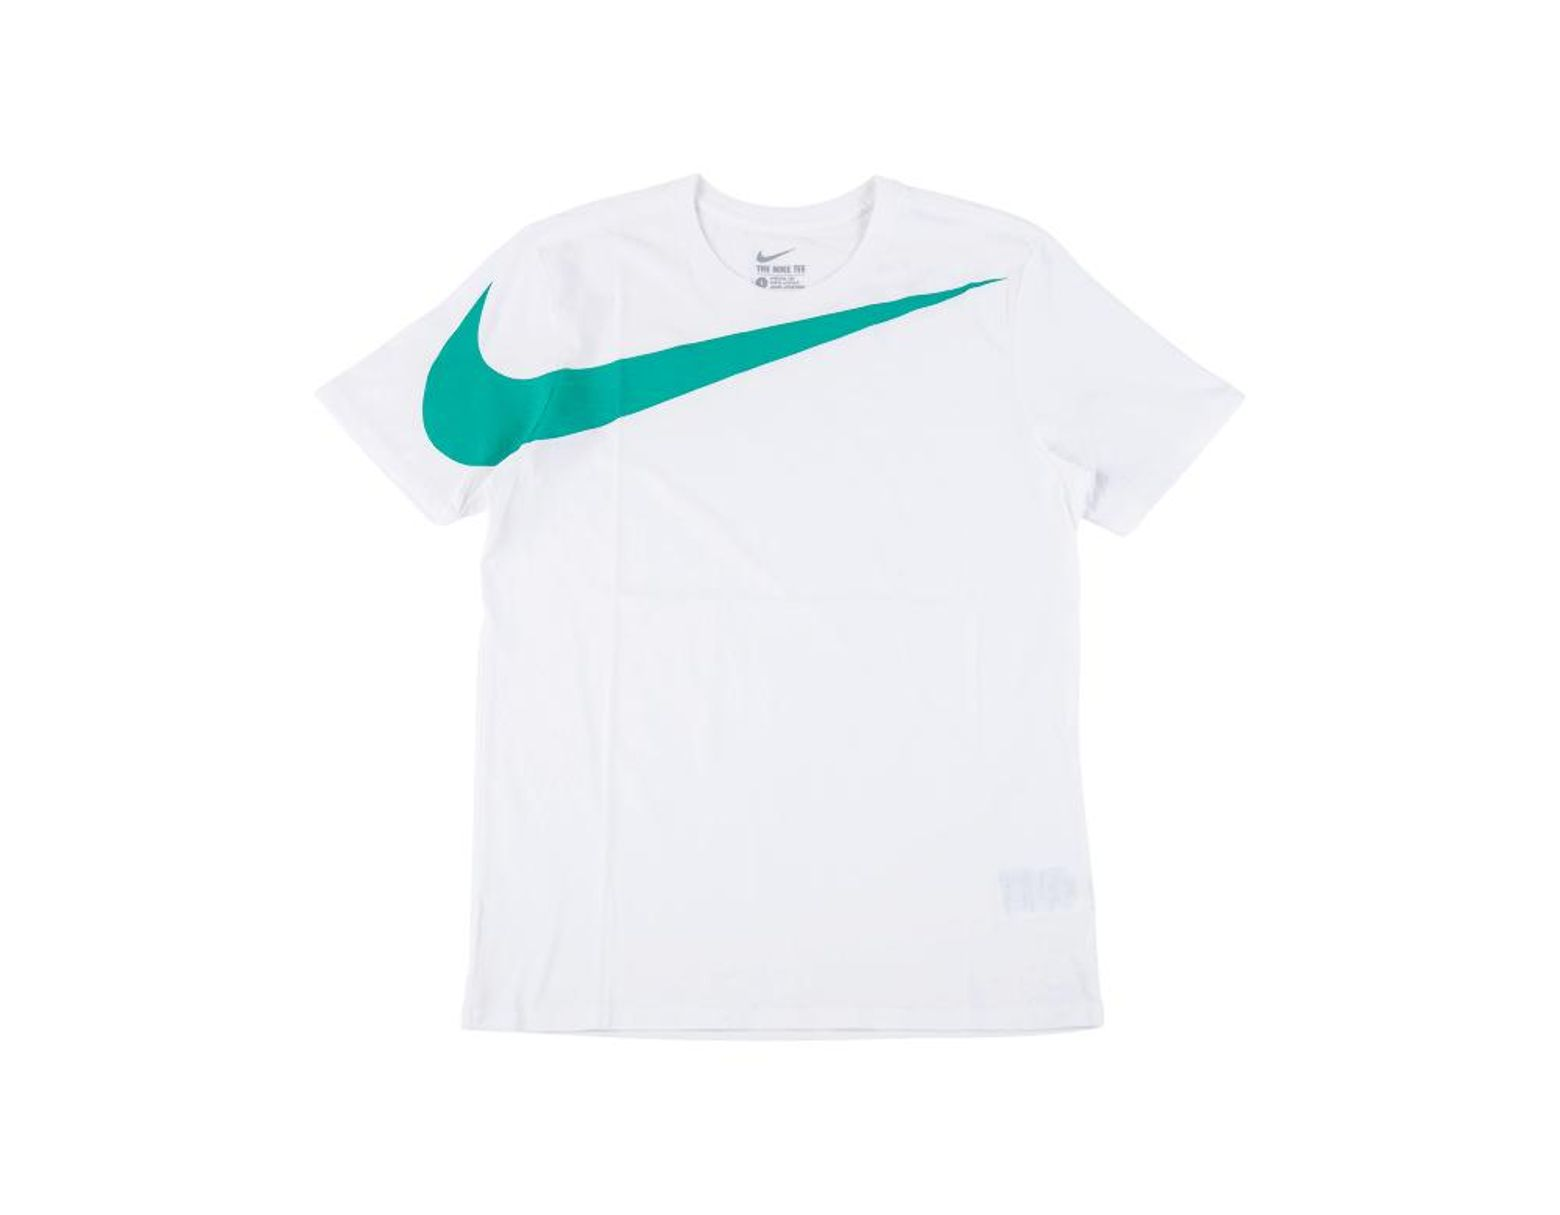 d1bdc656d76aa Nike Athletic T-shirt 'big Swoosh X Atmos' in White for Men - Lyst